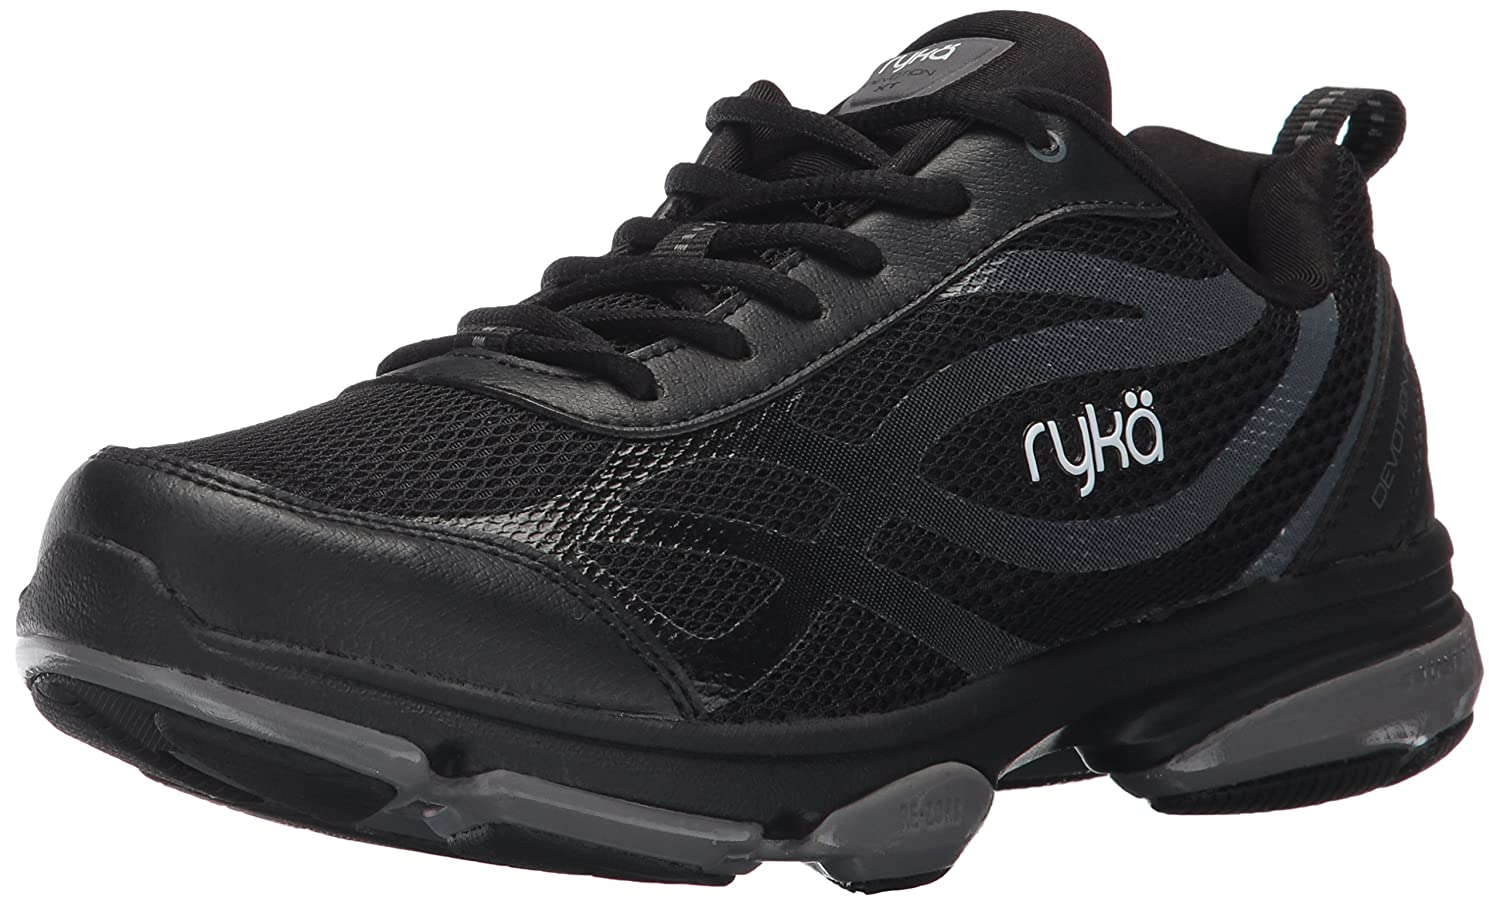 Ryka Women's Devotion XT Cross Trainer B01NB0YQON 8.5 B(M) US|Black/Meteorite/White